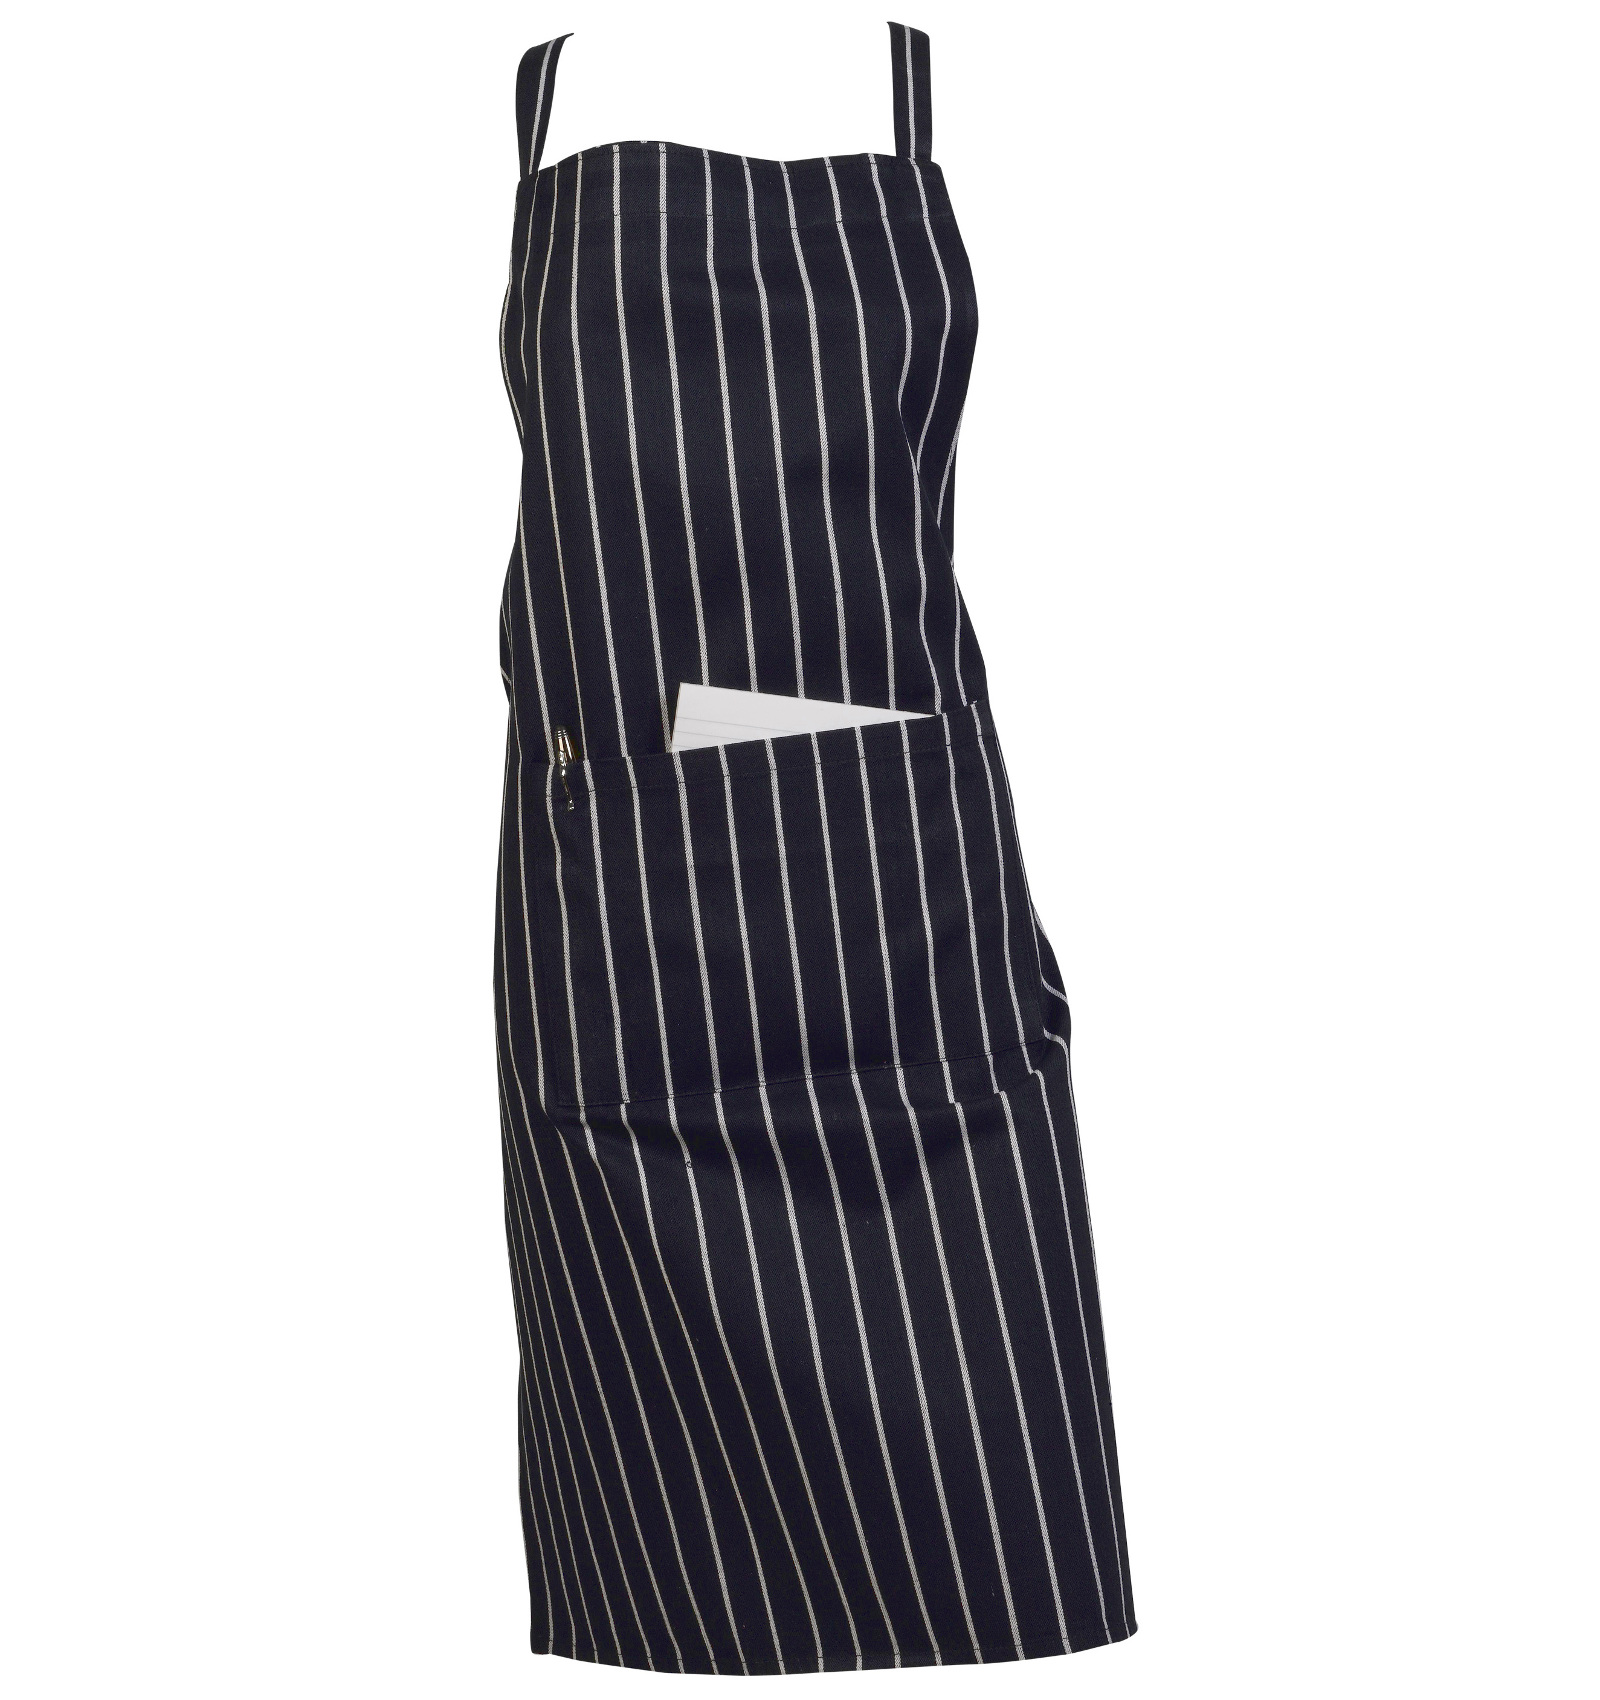 White apron catering